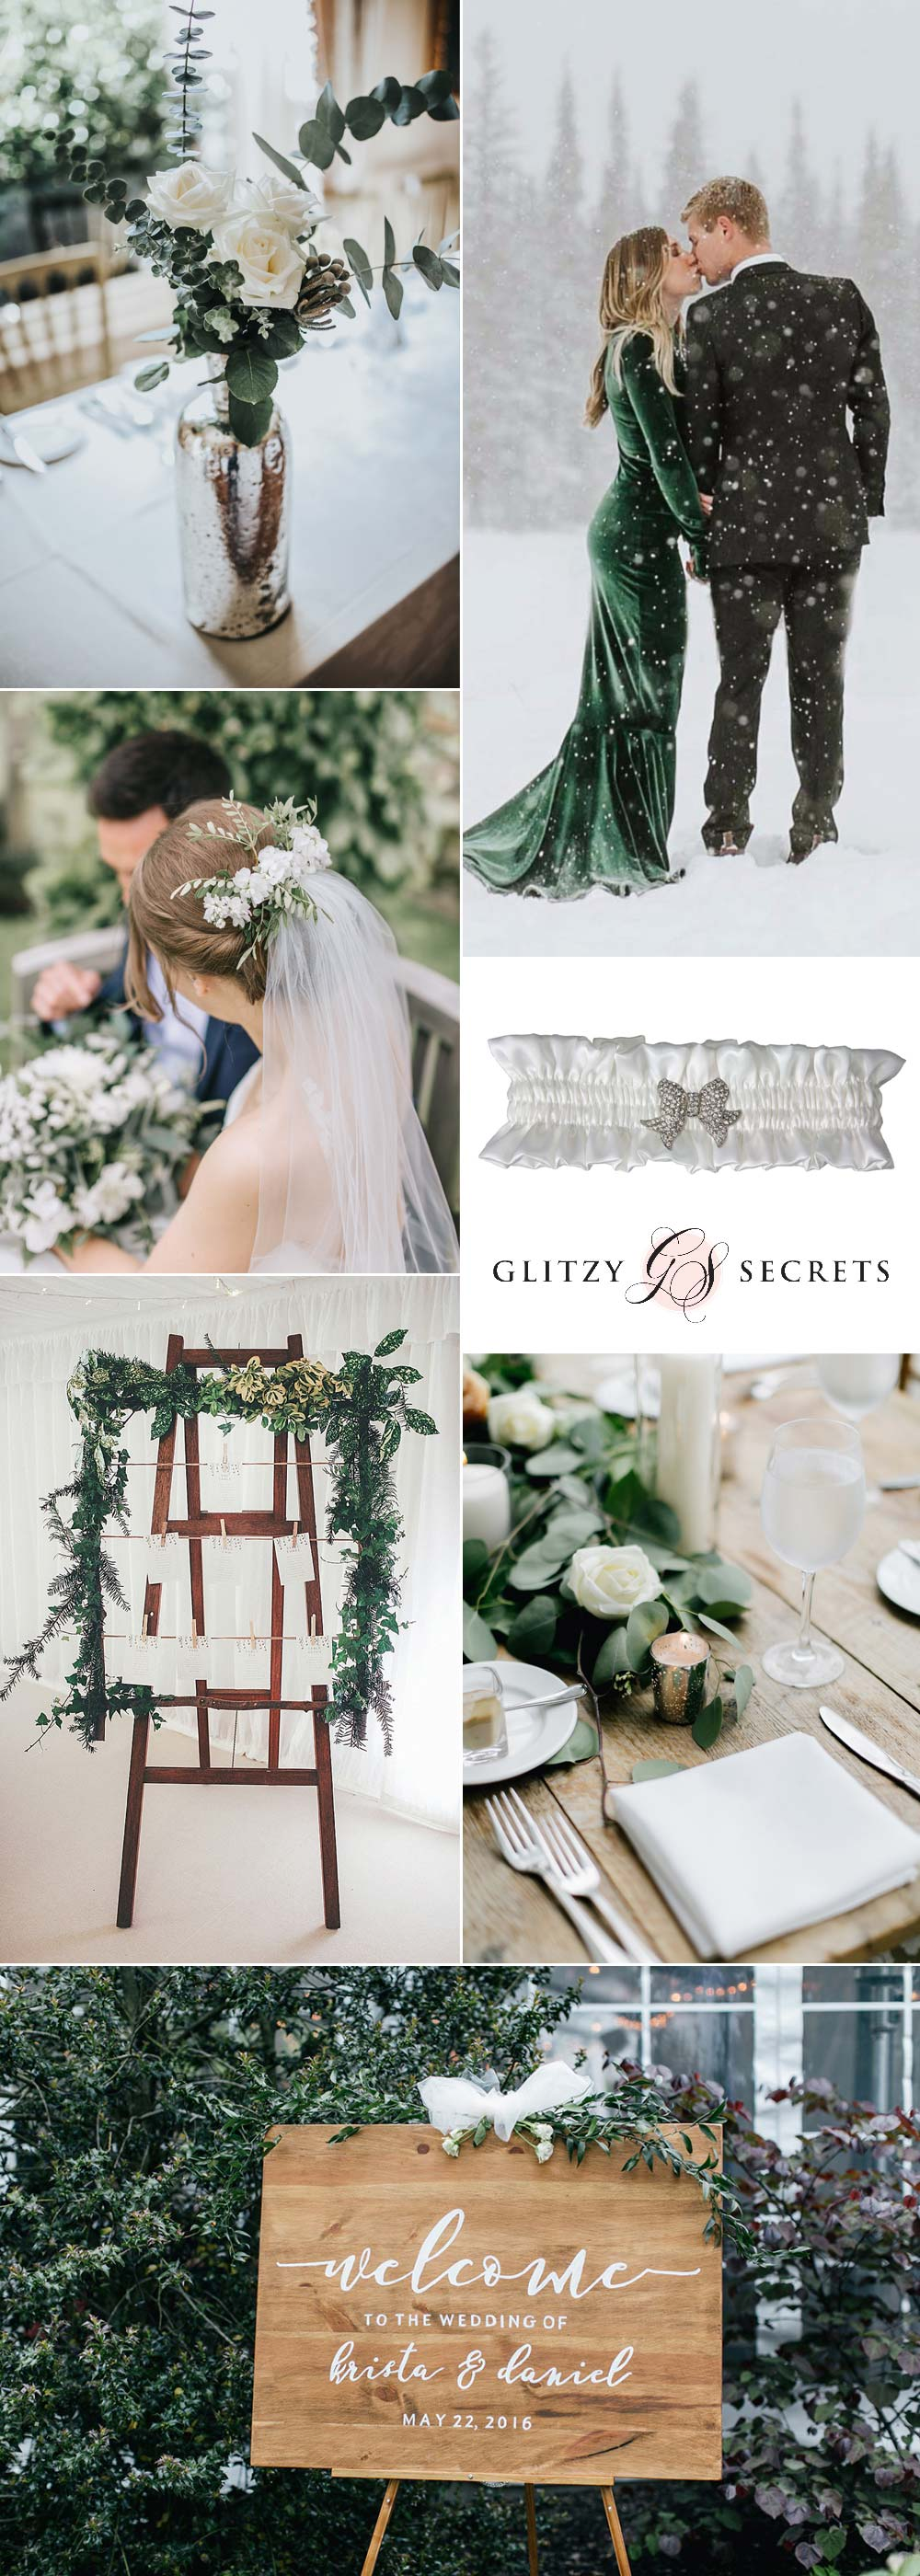 green and white winter wedding day